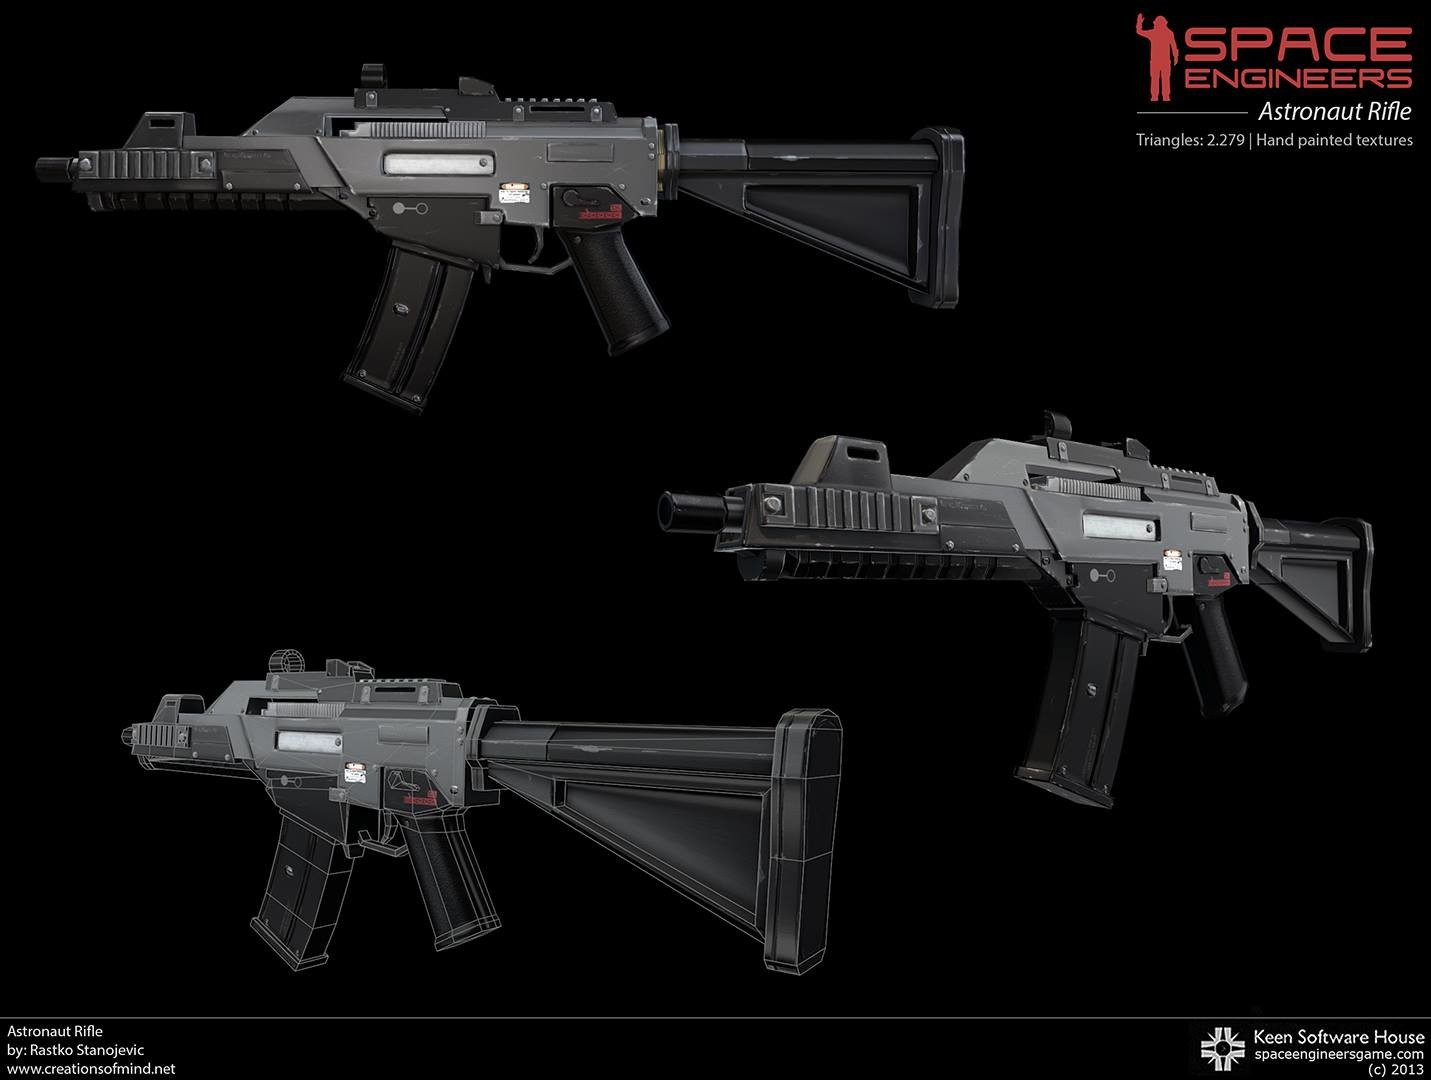 Astronaut rifle from game Space Engineers. Hand painted textures. Tris: 2.279 (c) 2013